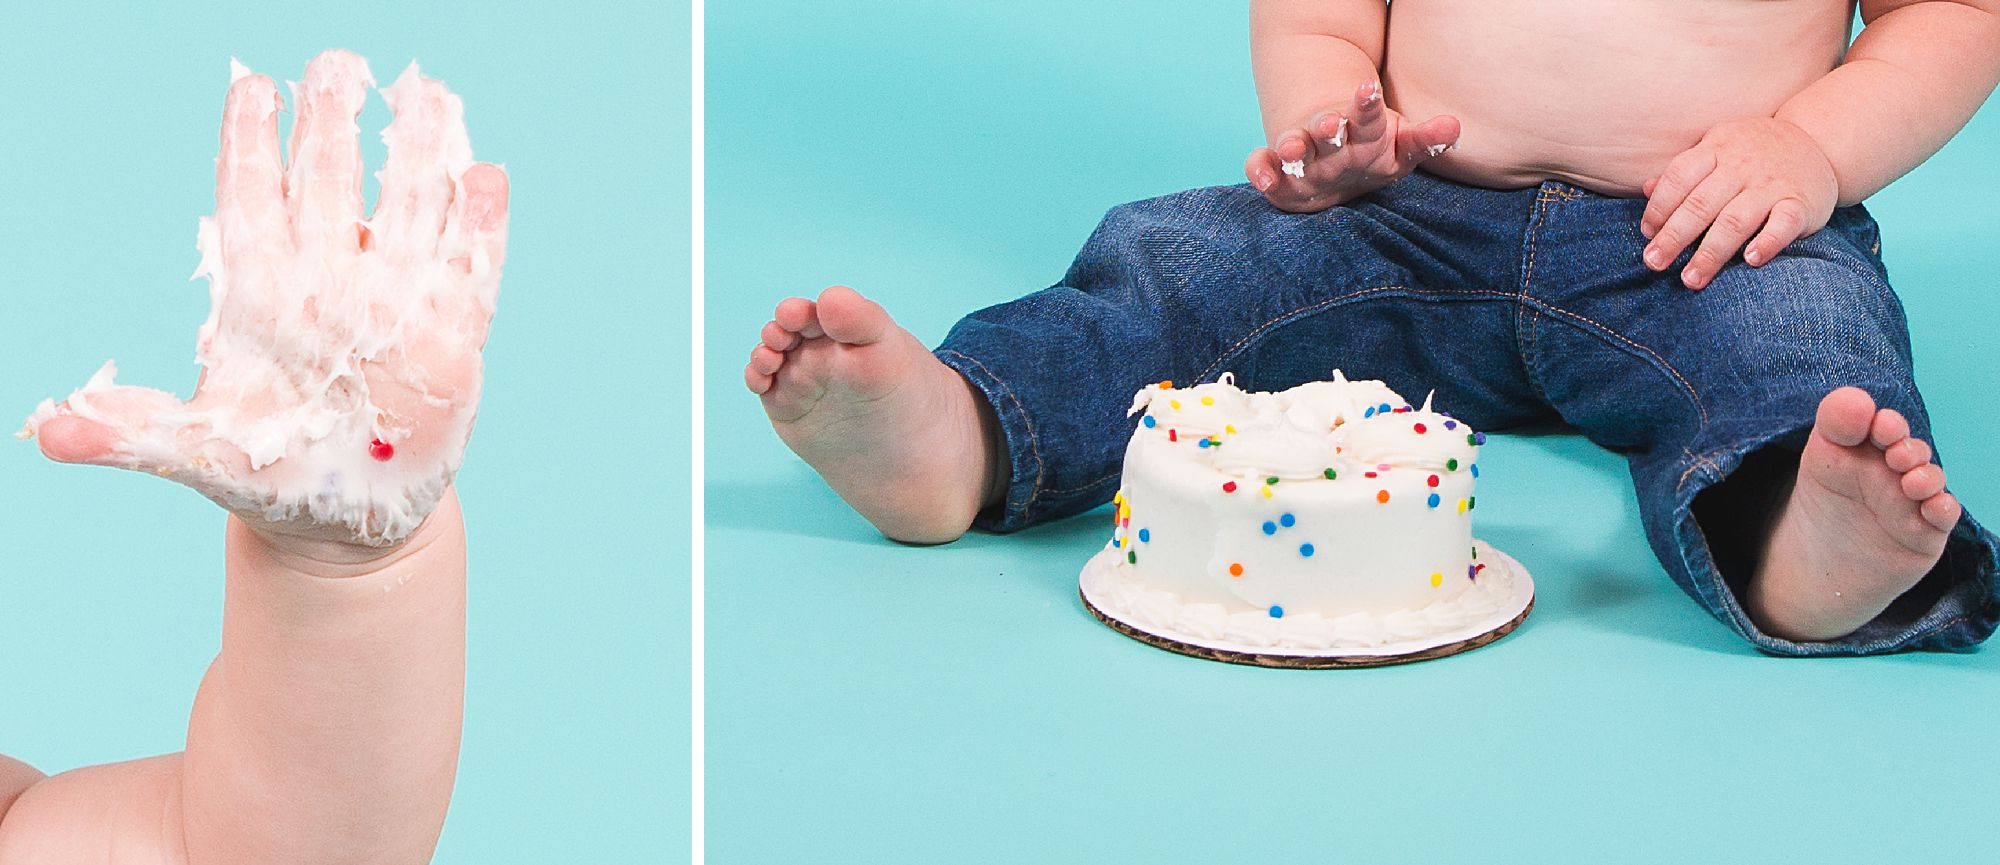 Detail collage of baby's cake smash session showing blue jeans and sprinkles frosting